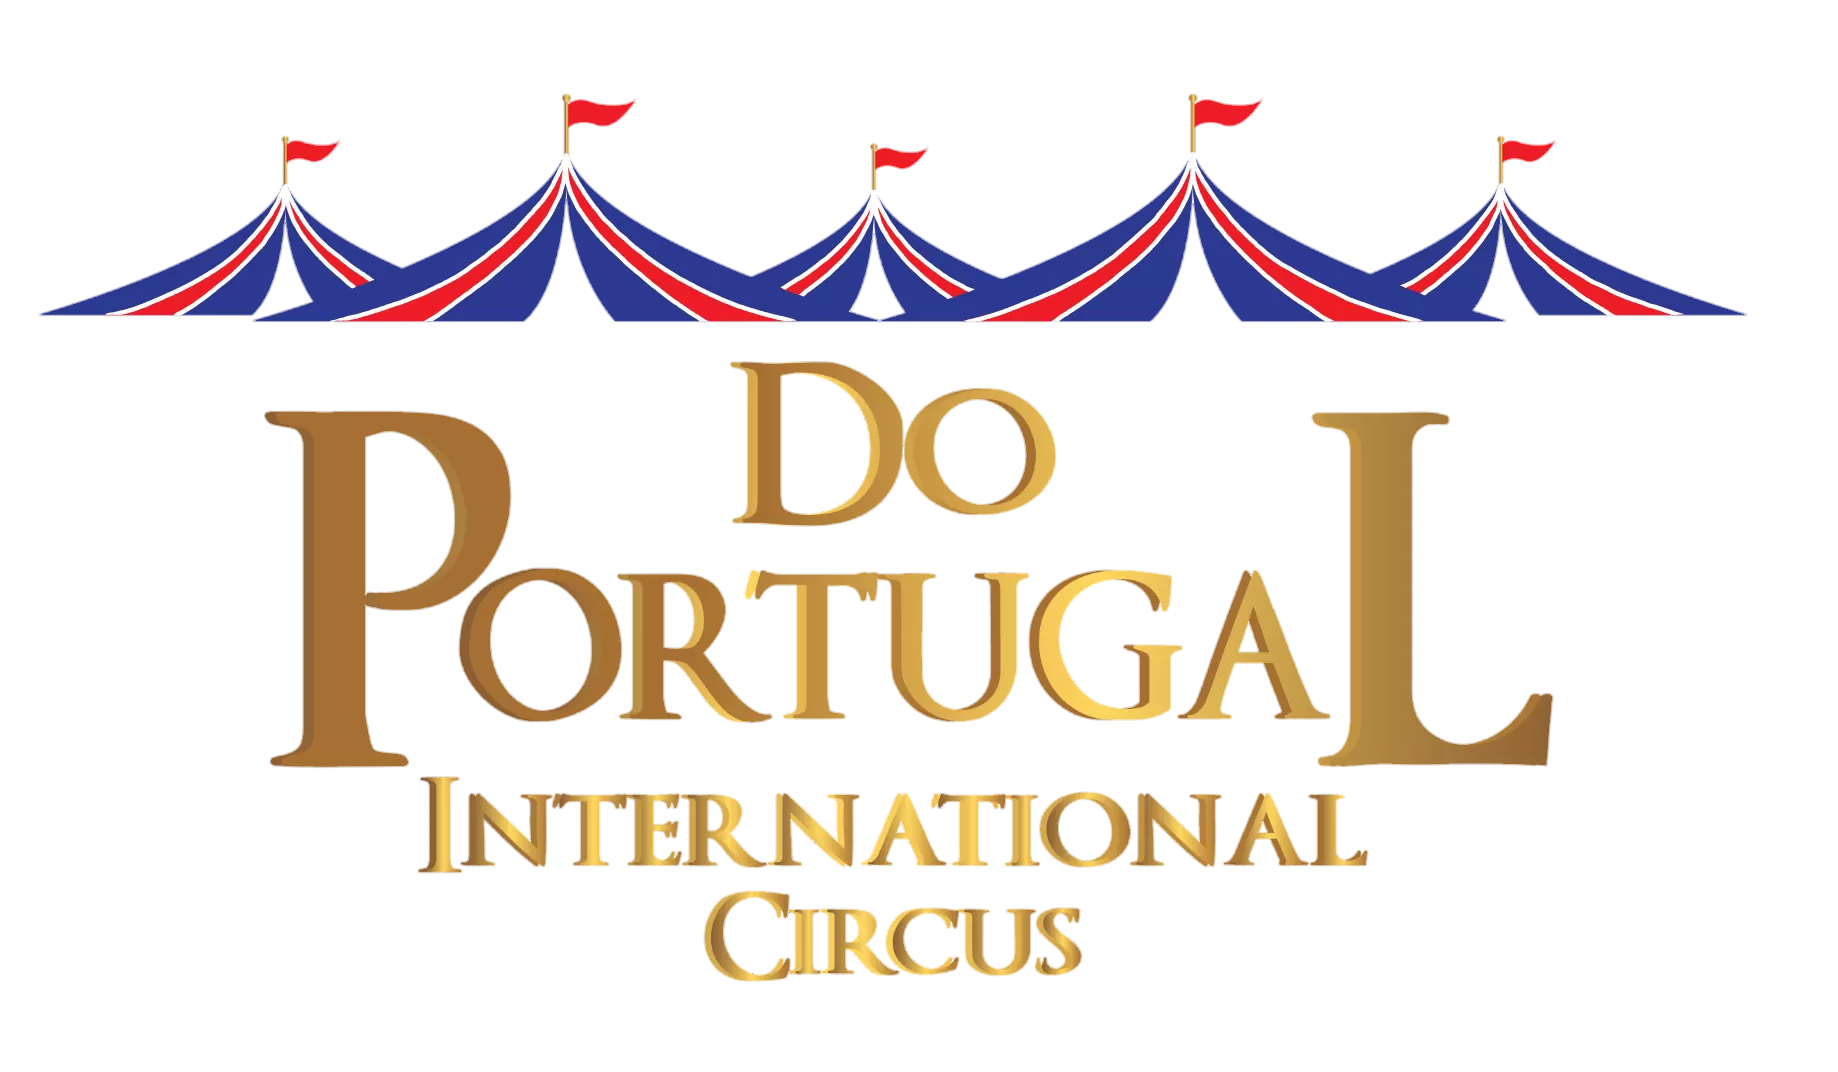 Do Portugal International Circus